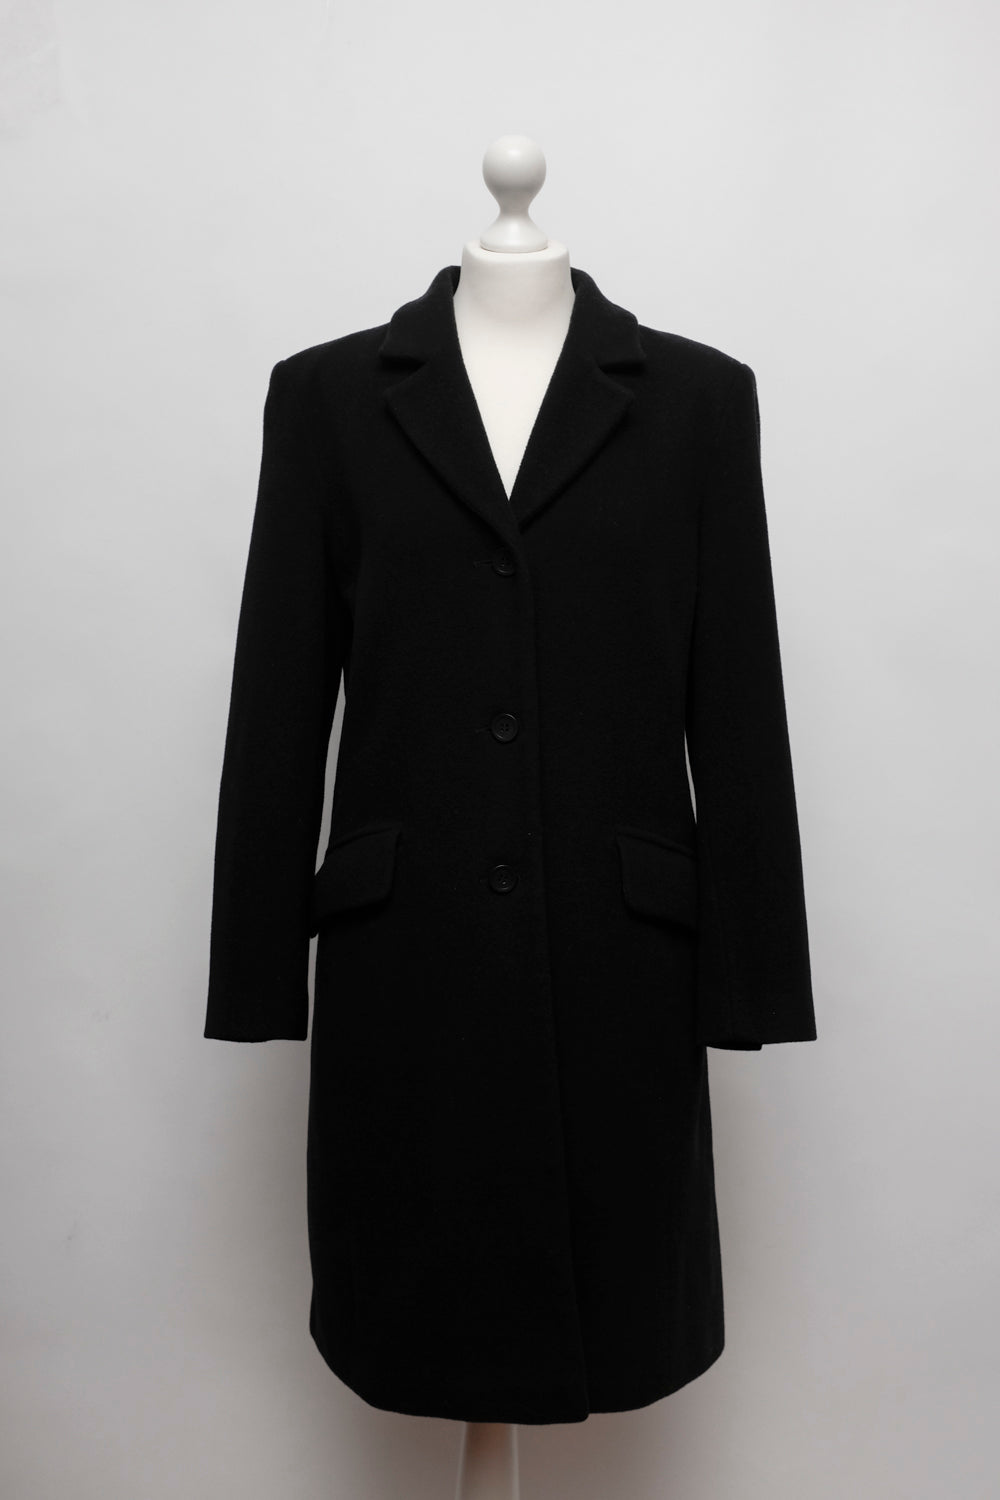 0021_BOXY BLACK WOOL BLAZER COAT